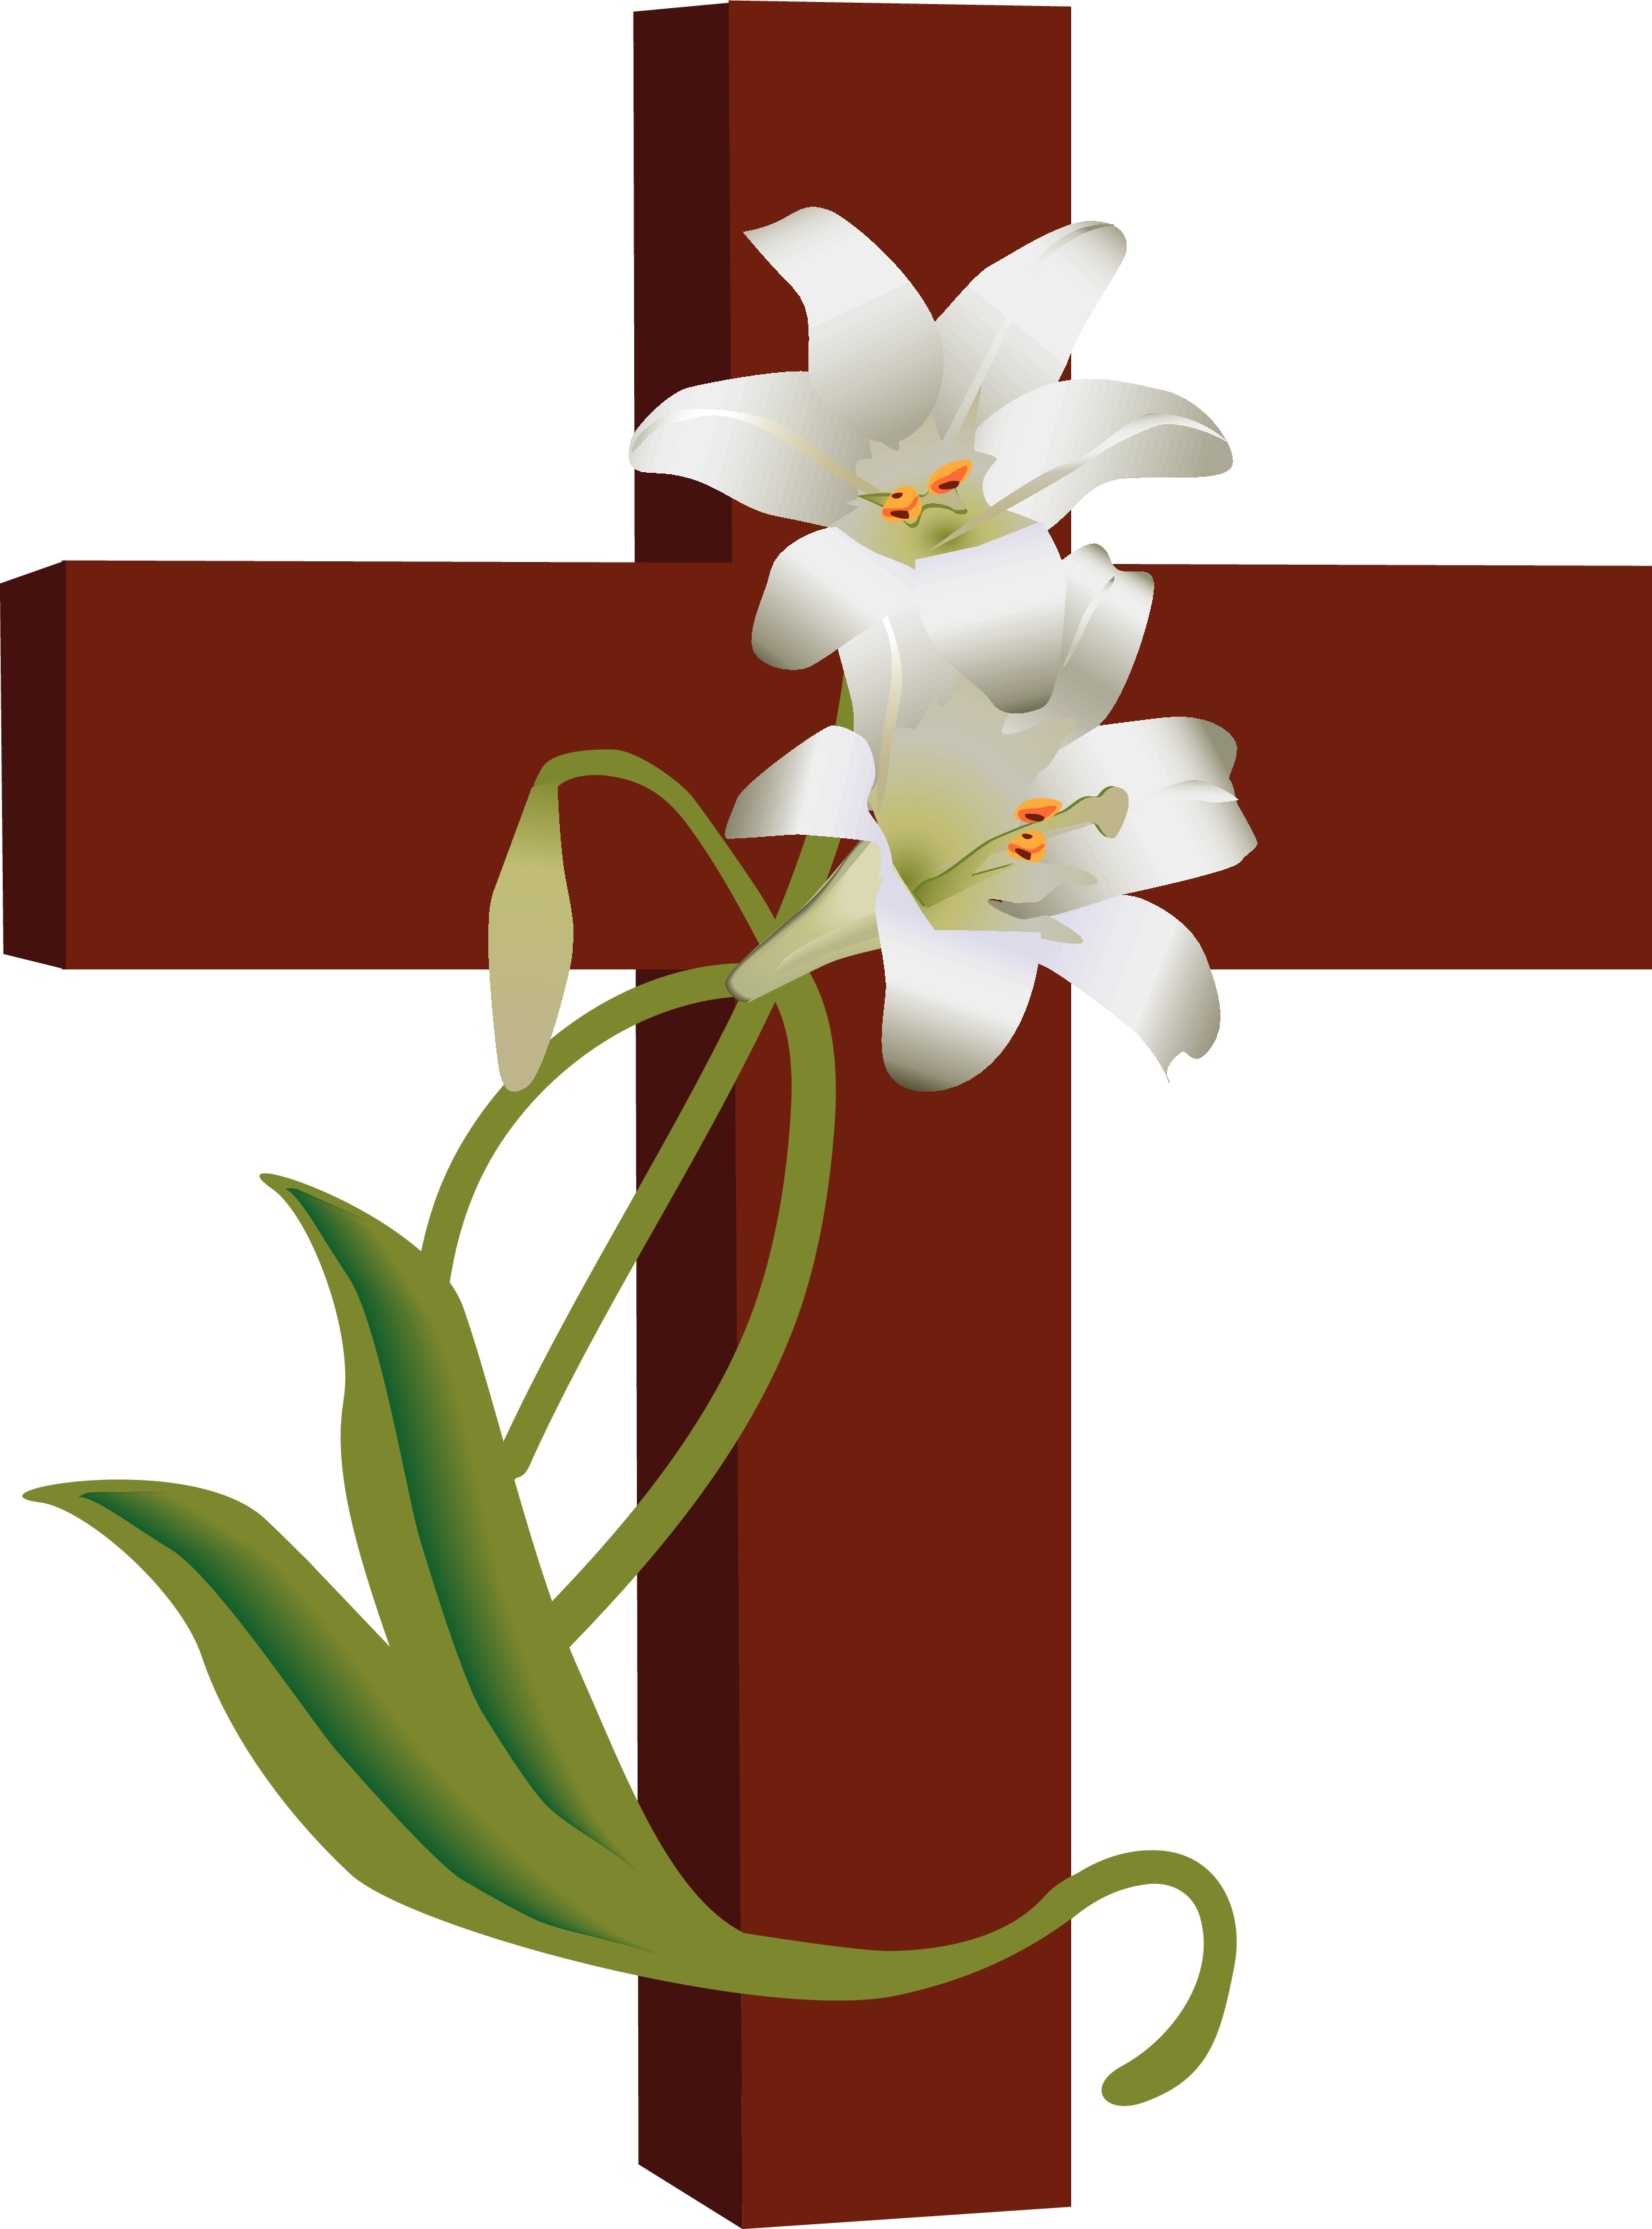 Red Flower clipart religious #6